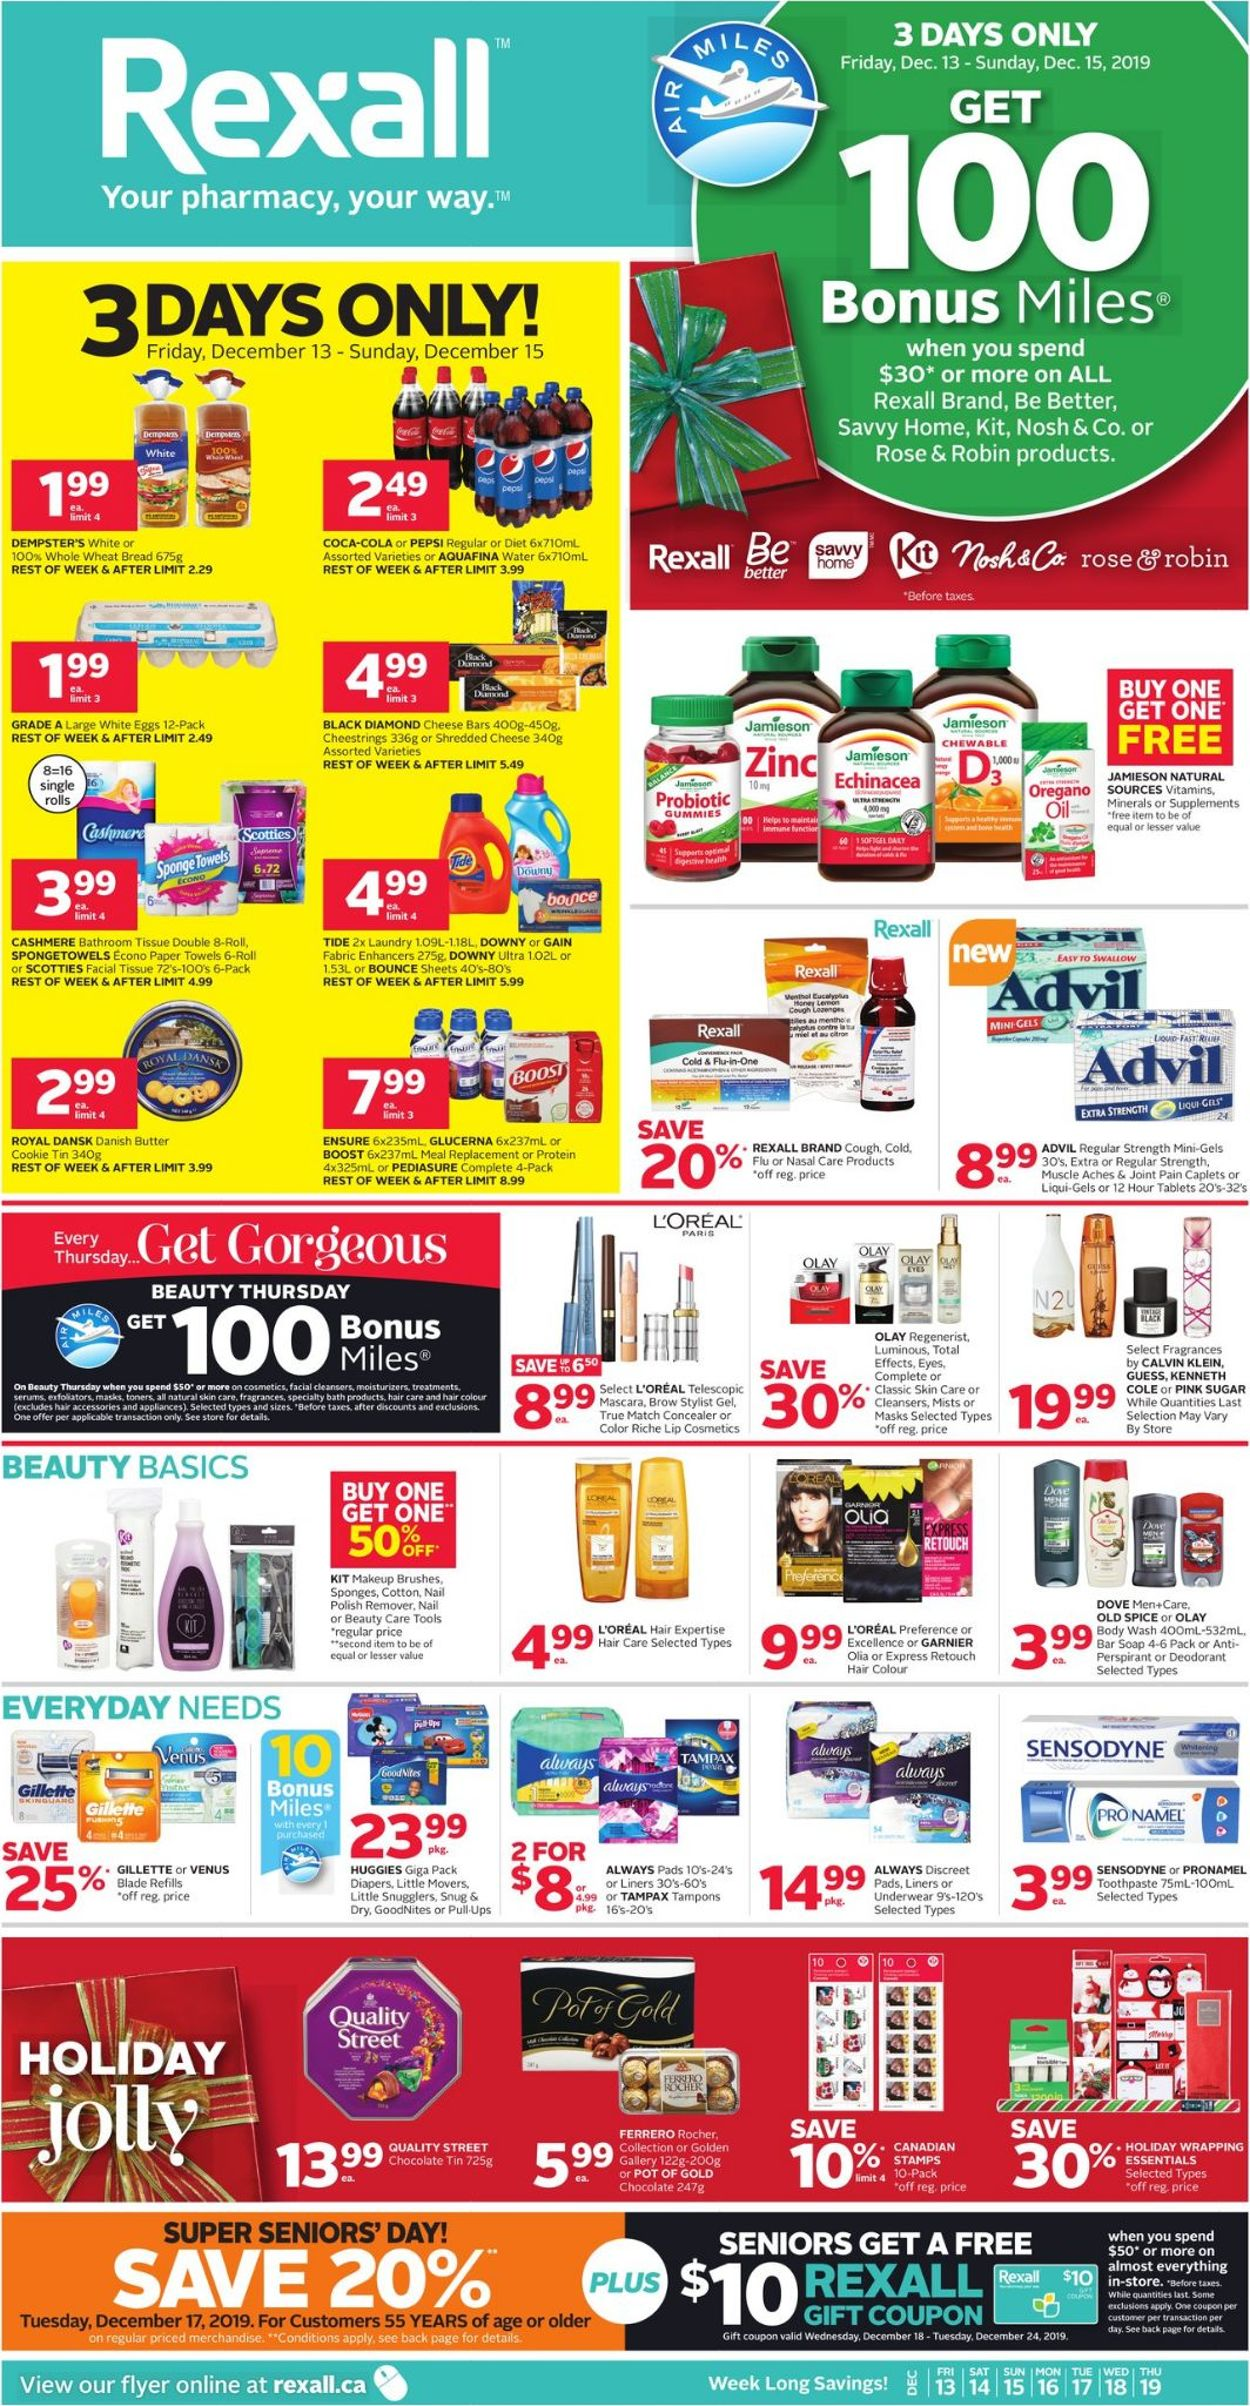 Rexall - HOLIDAY Flyer 2019